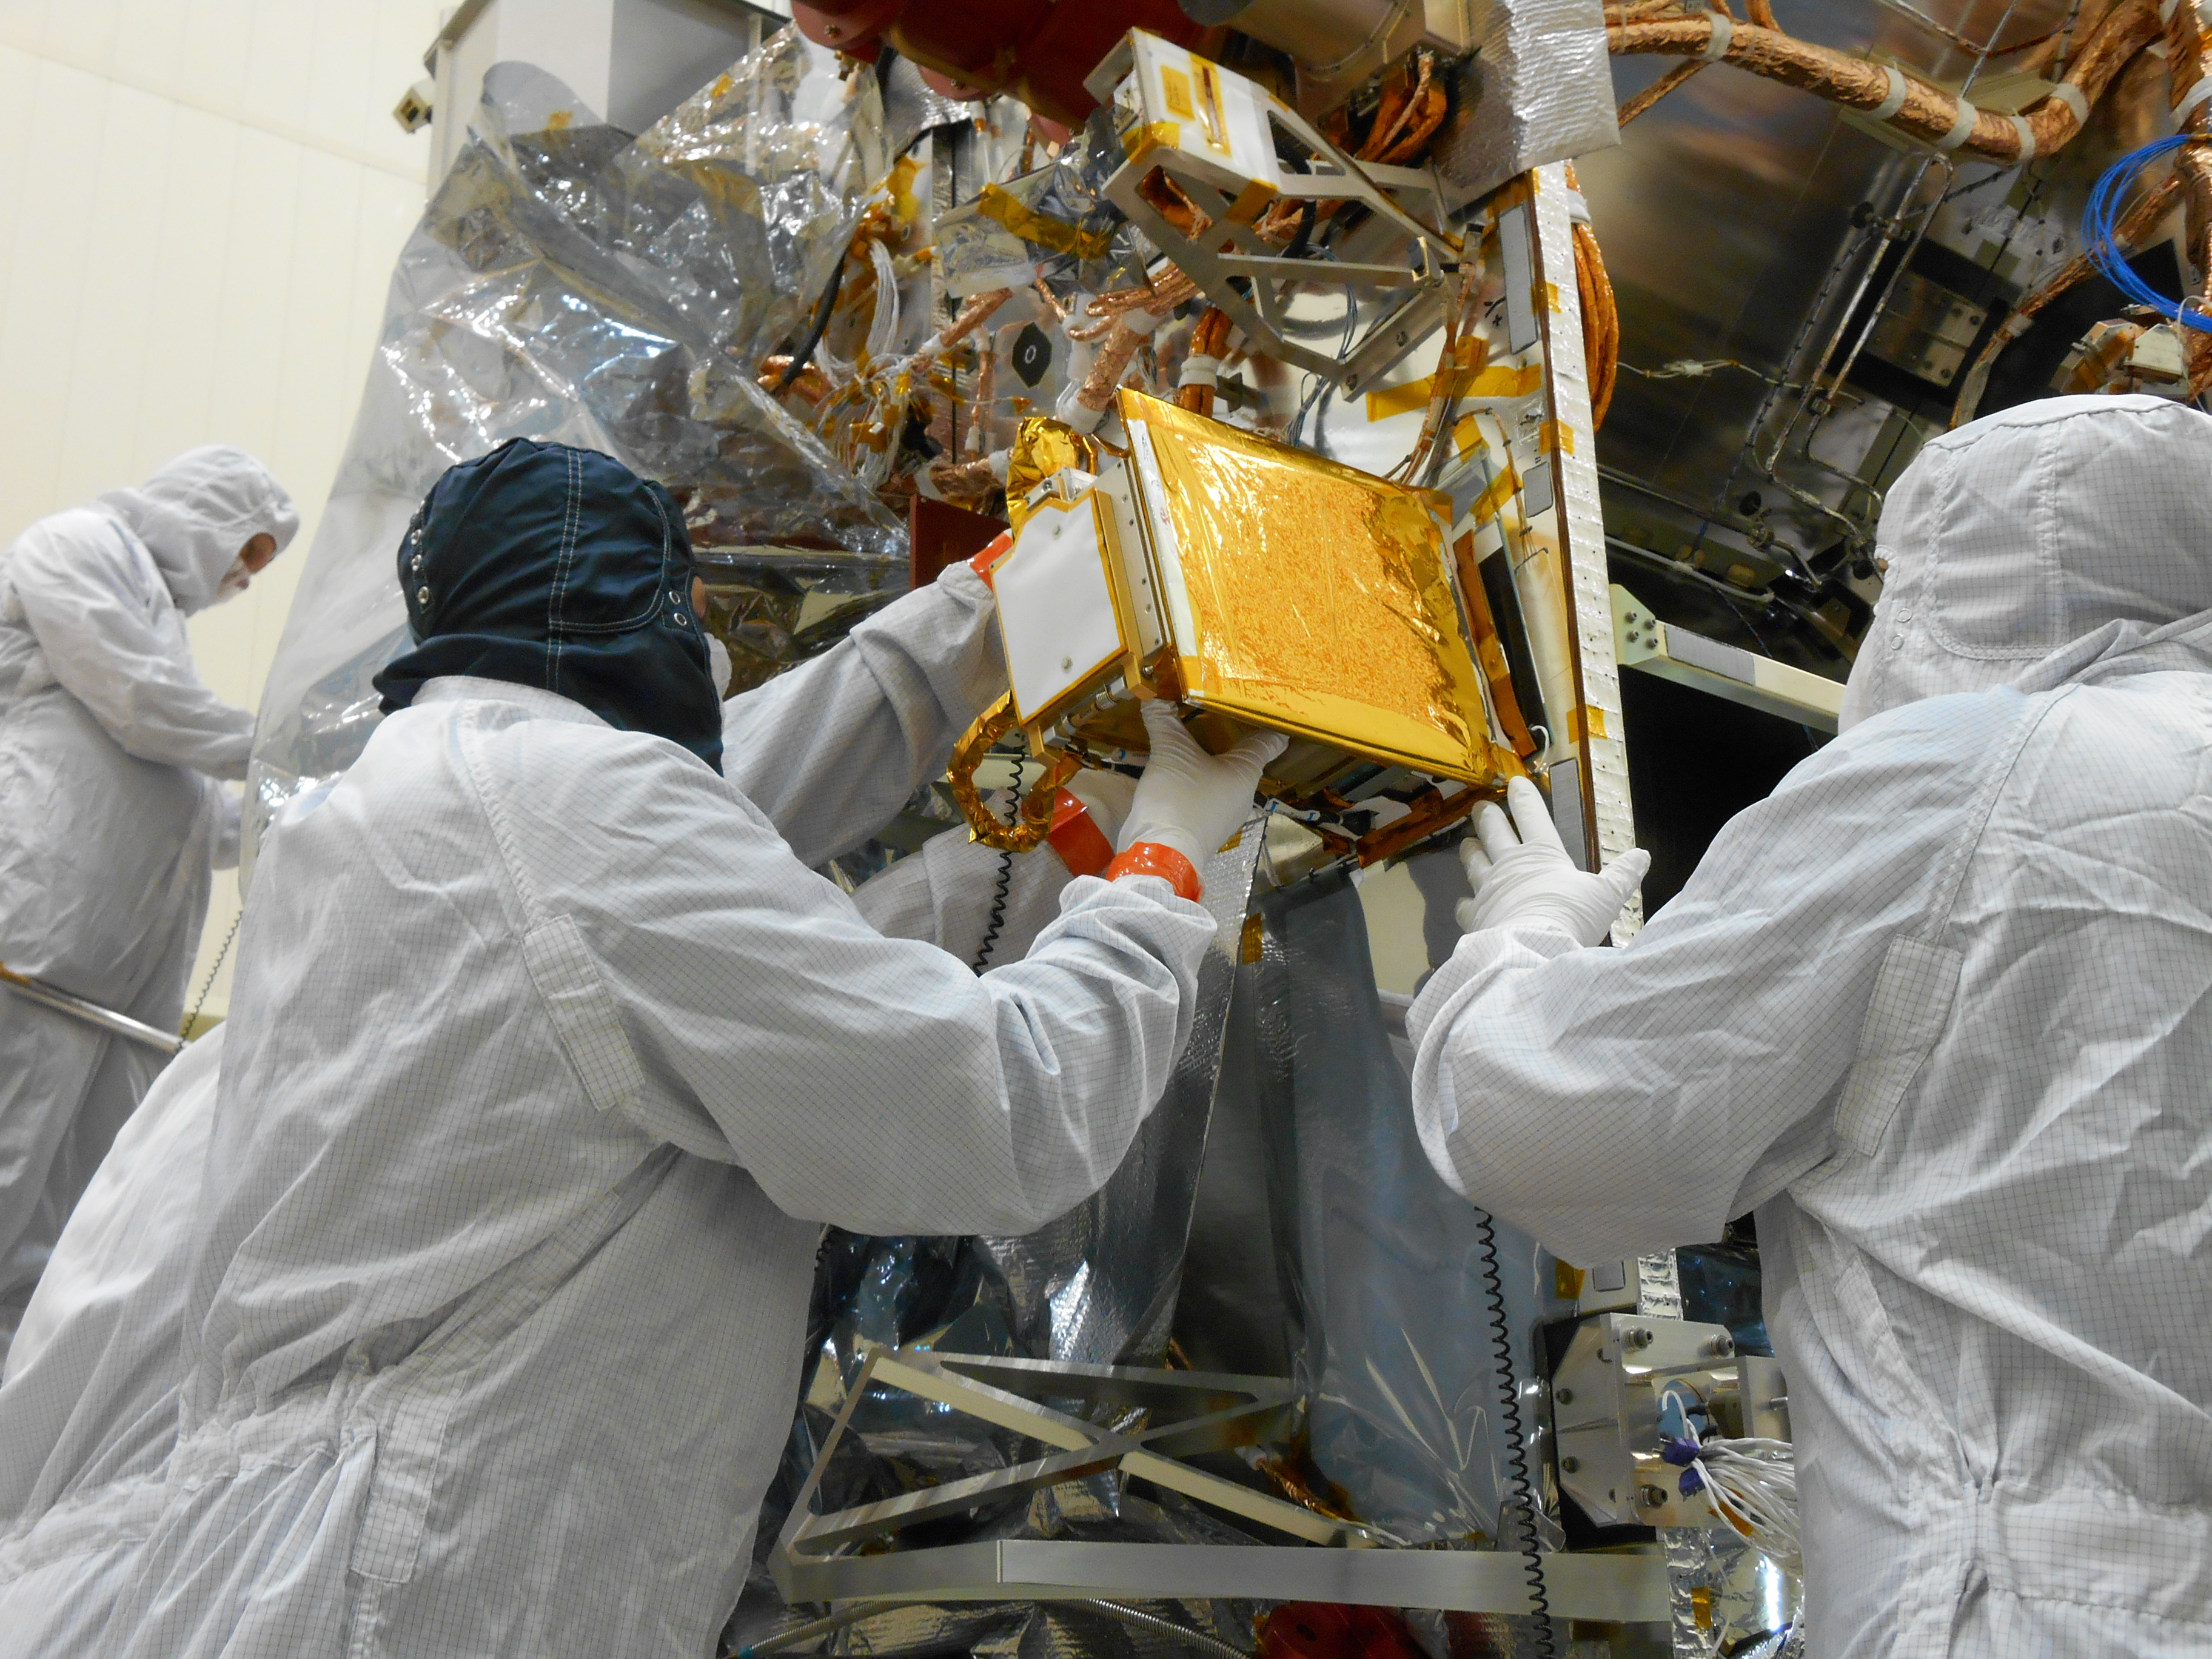 PI BLOG:  HOW REXIS MADE IT ON THE SPACECRAFT